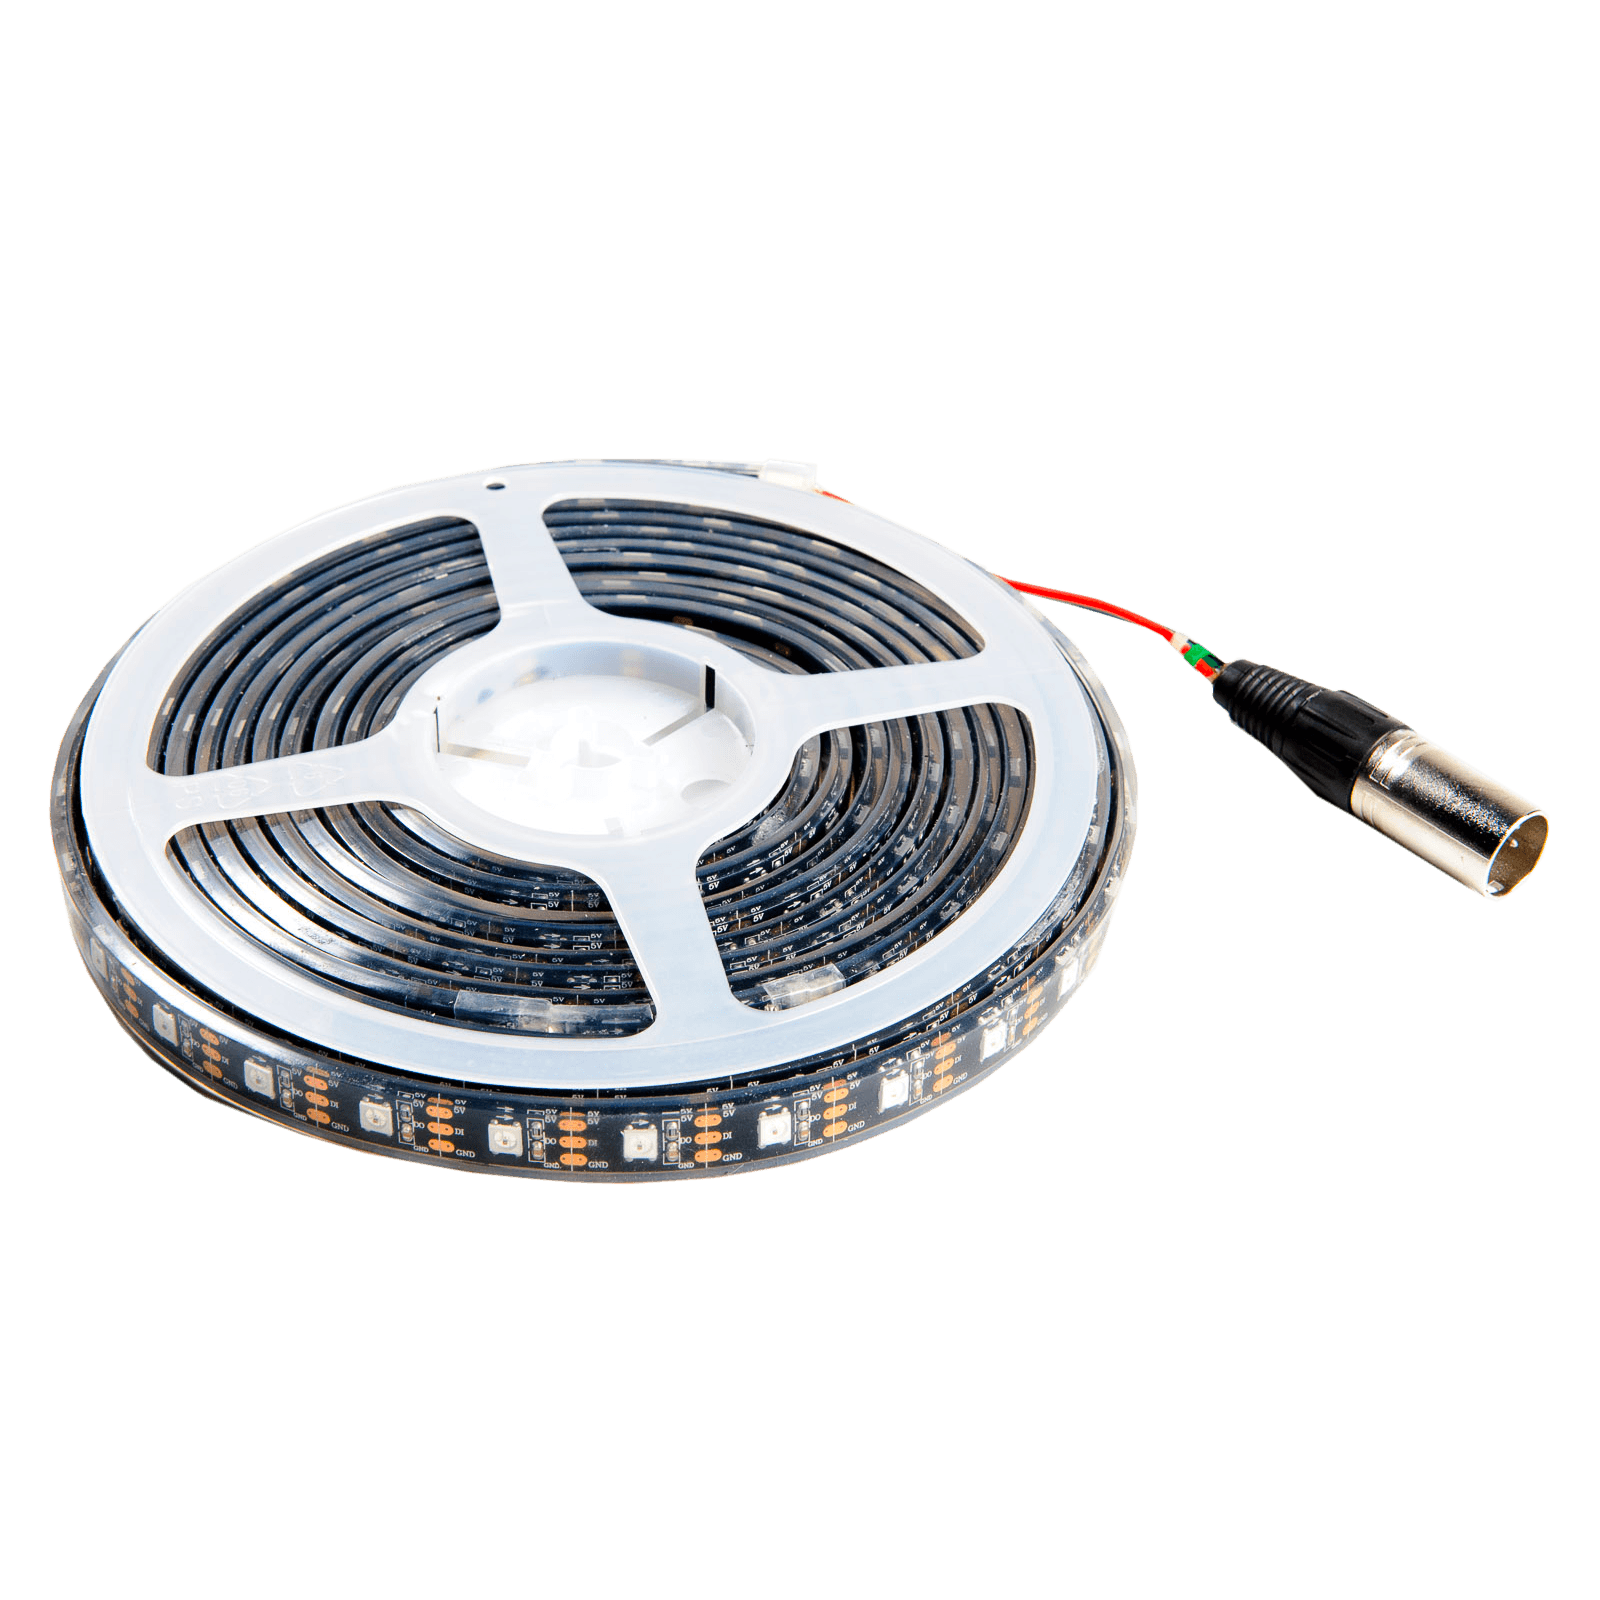 City Theatrical QolorPIX Pixel Controlled LED Tape